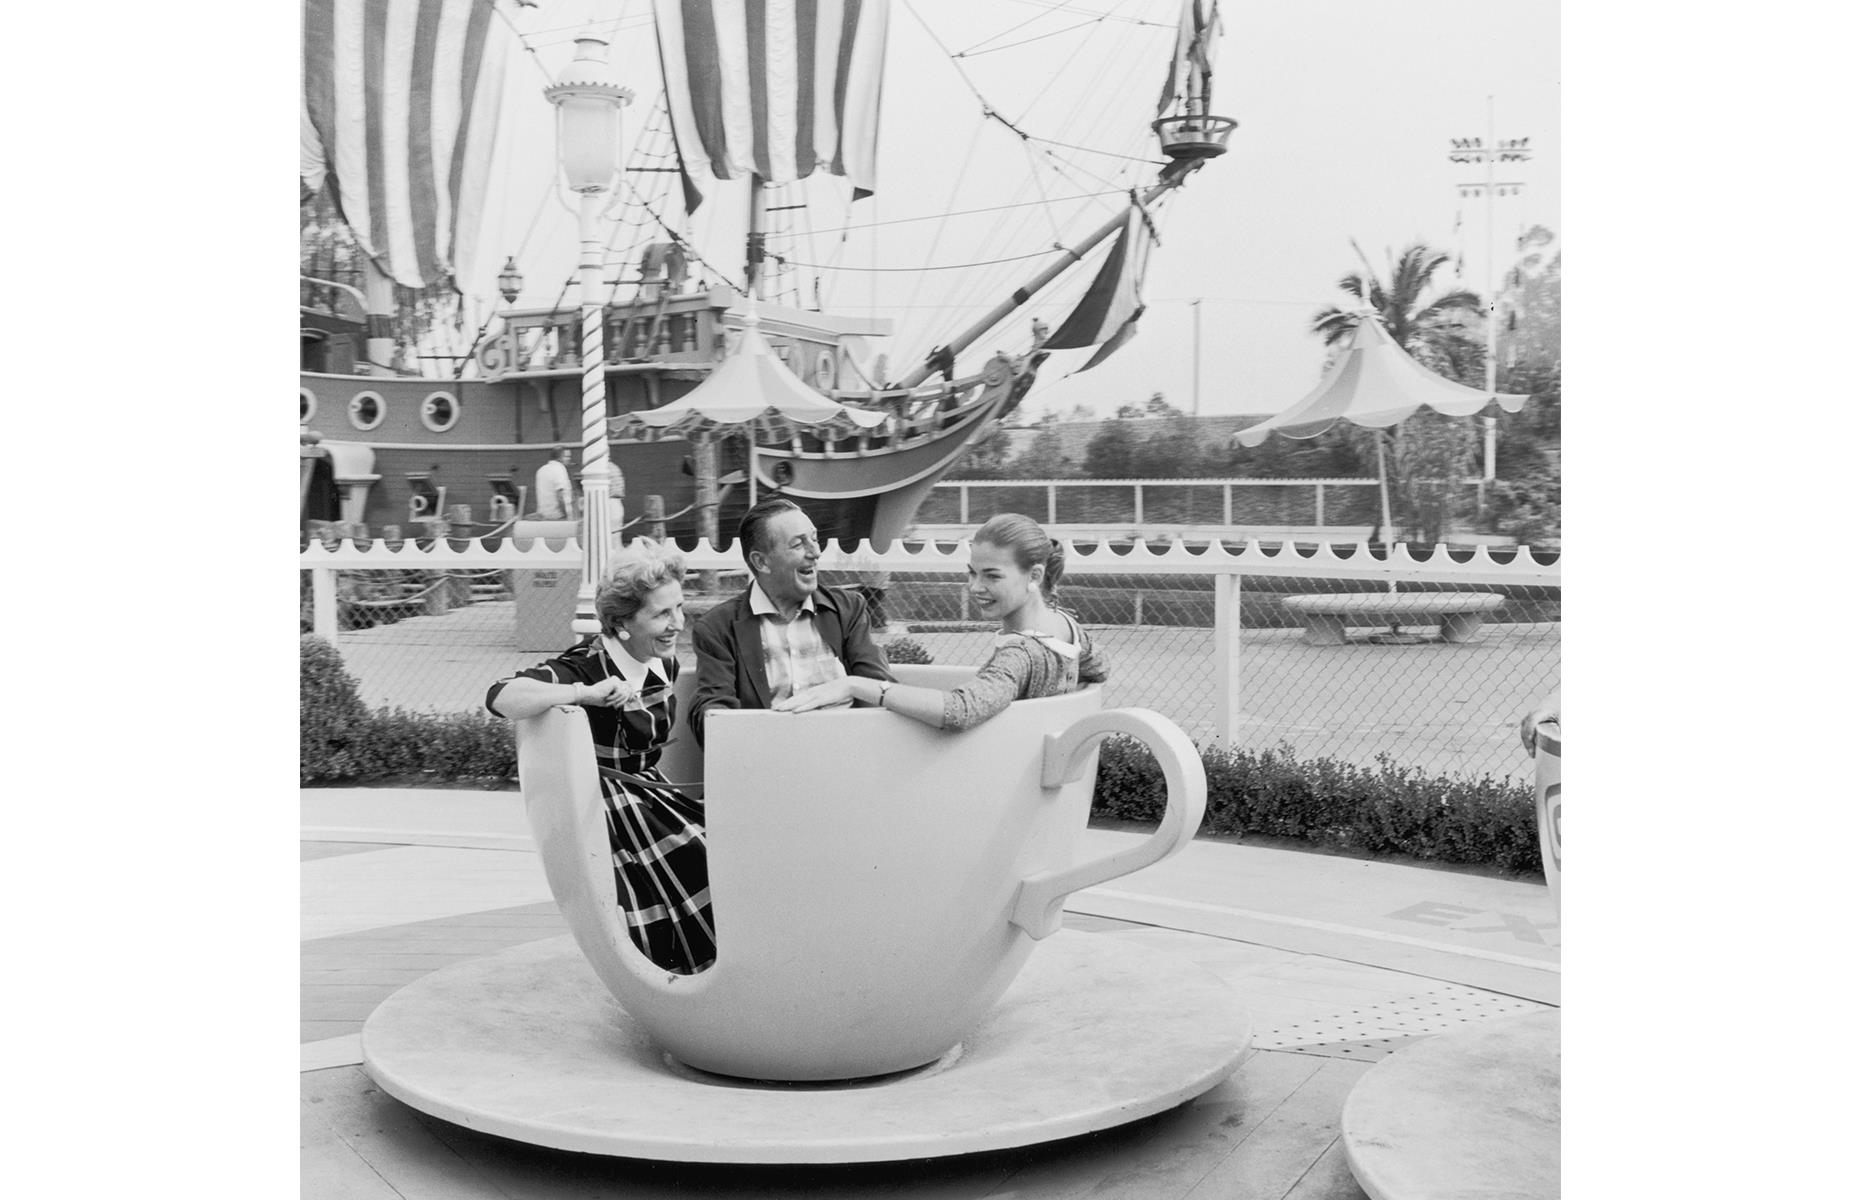 Slide 14 of 47: It wasn't unusual to spot Walt Disney himself in his beloved park in the early days, riding the attractions with his family, and chatting to visitors. Disney passed way in 1966, but he's pictured here in the 1950s, enjoying a whirl on the park's teacup ride with his wife Lillian and daughter Diane.